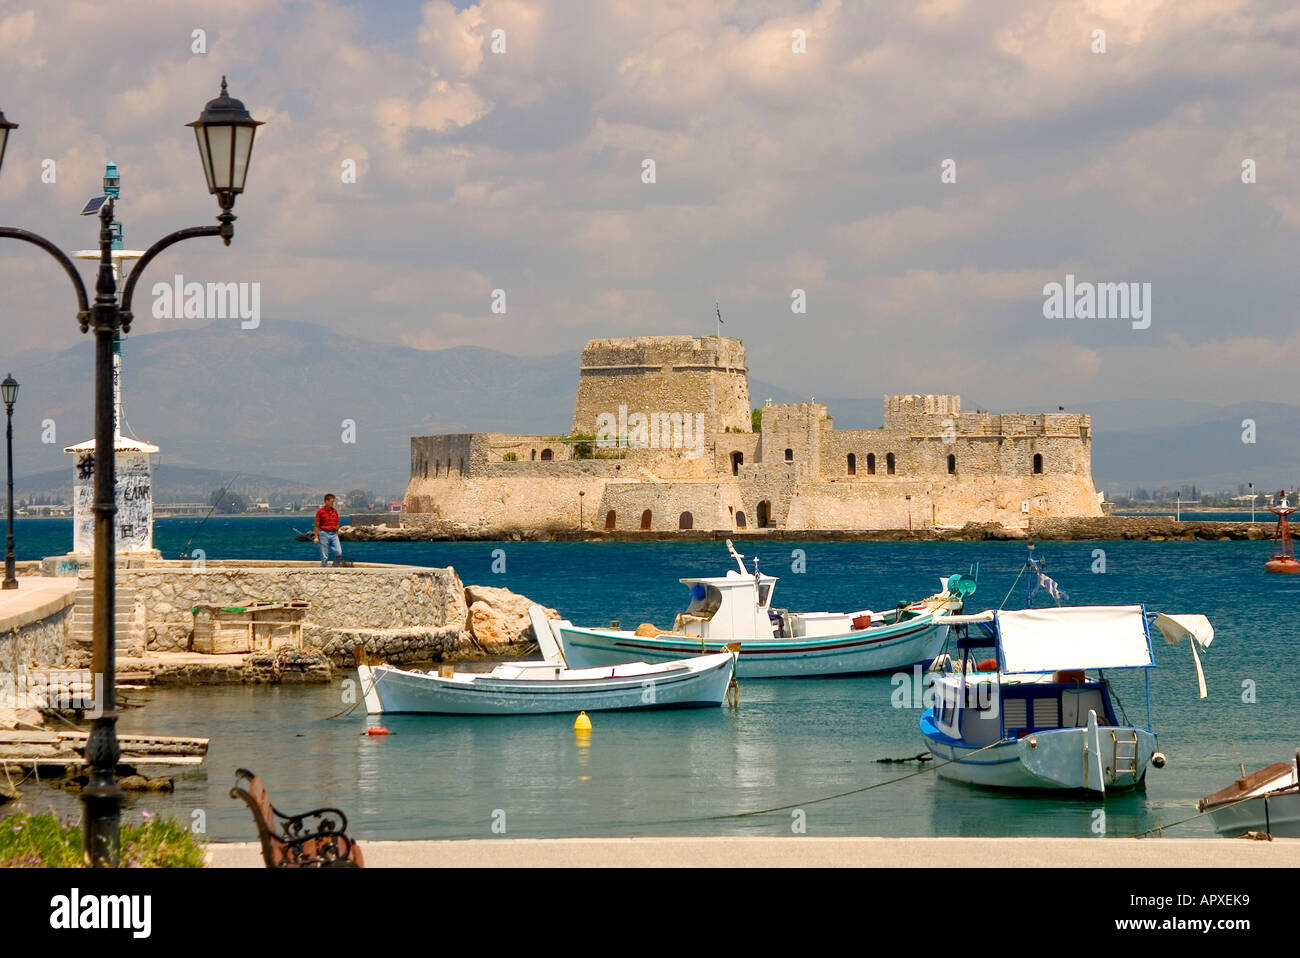 Bourtzi castle in the middle of the harbour of Nafplio, venetian castle, Nafplio, Peloponnese, Greece Stock Photo